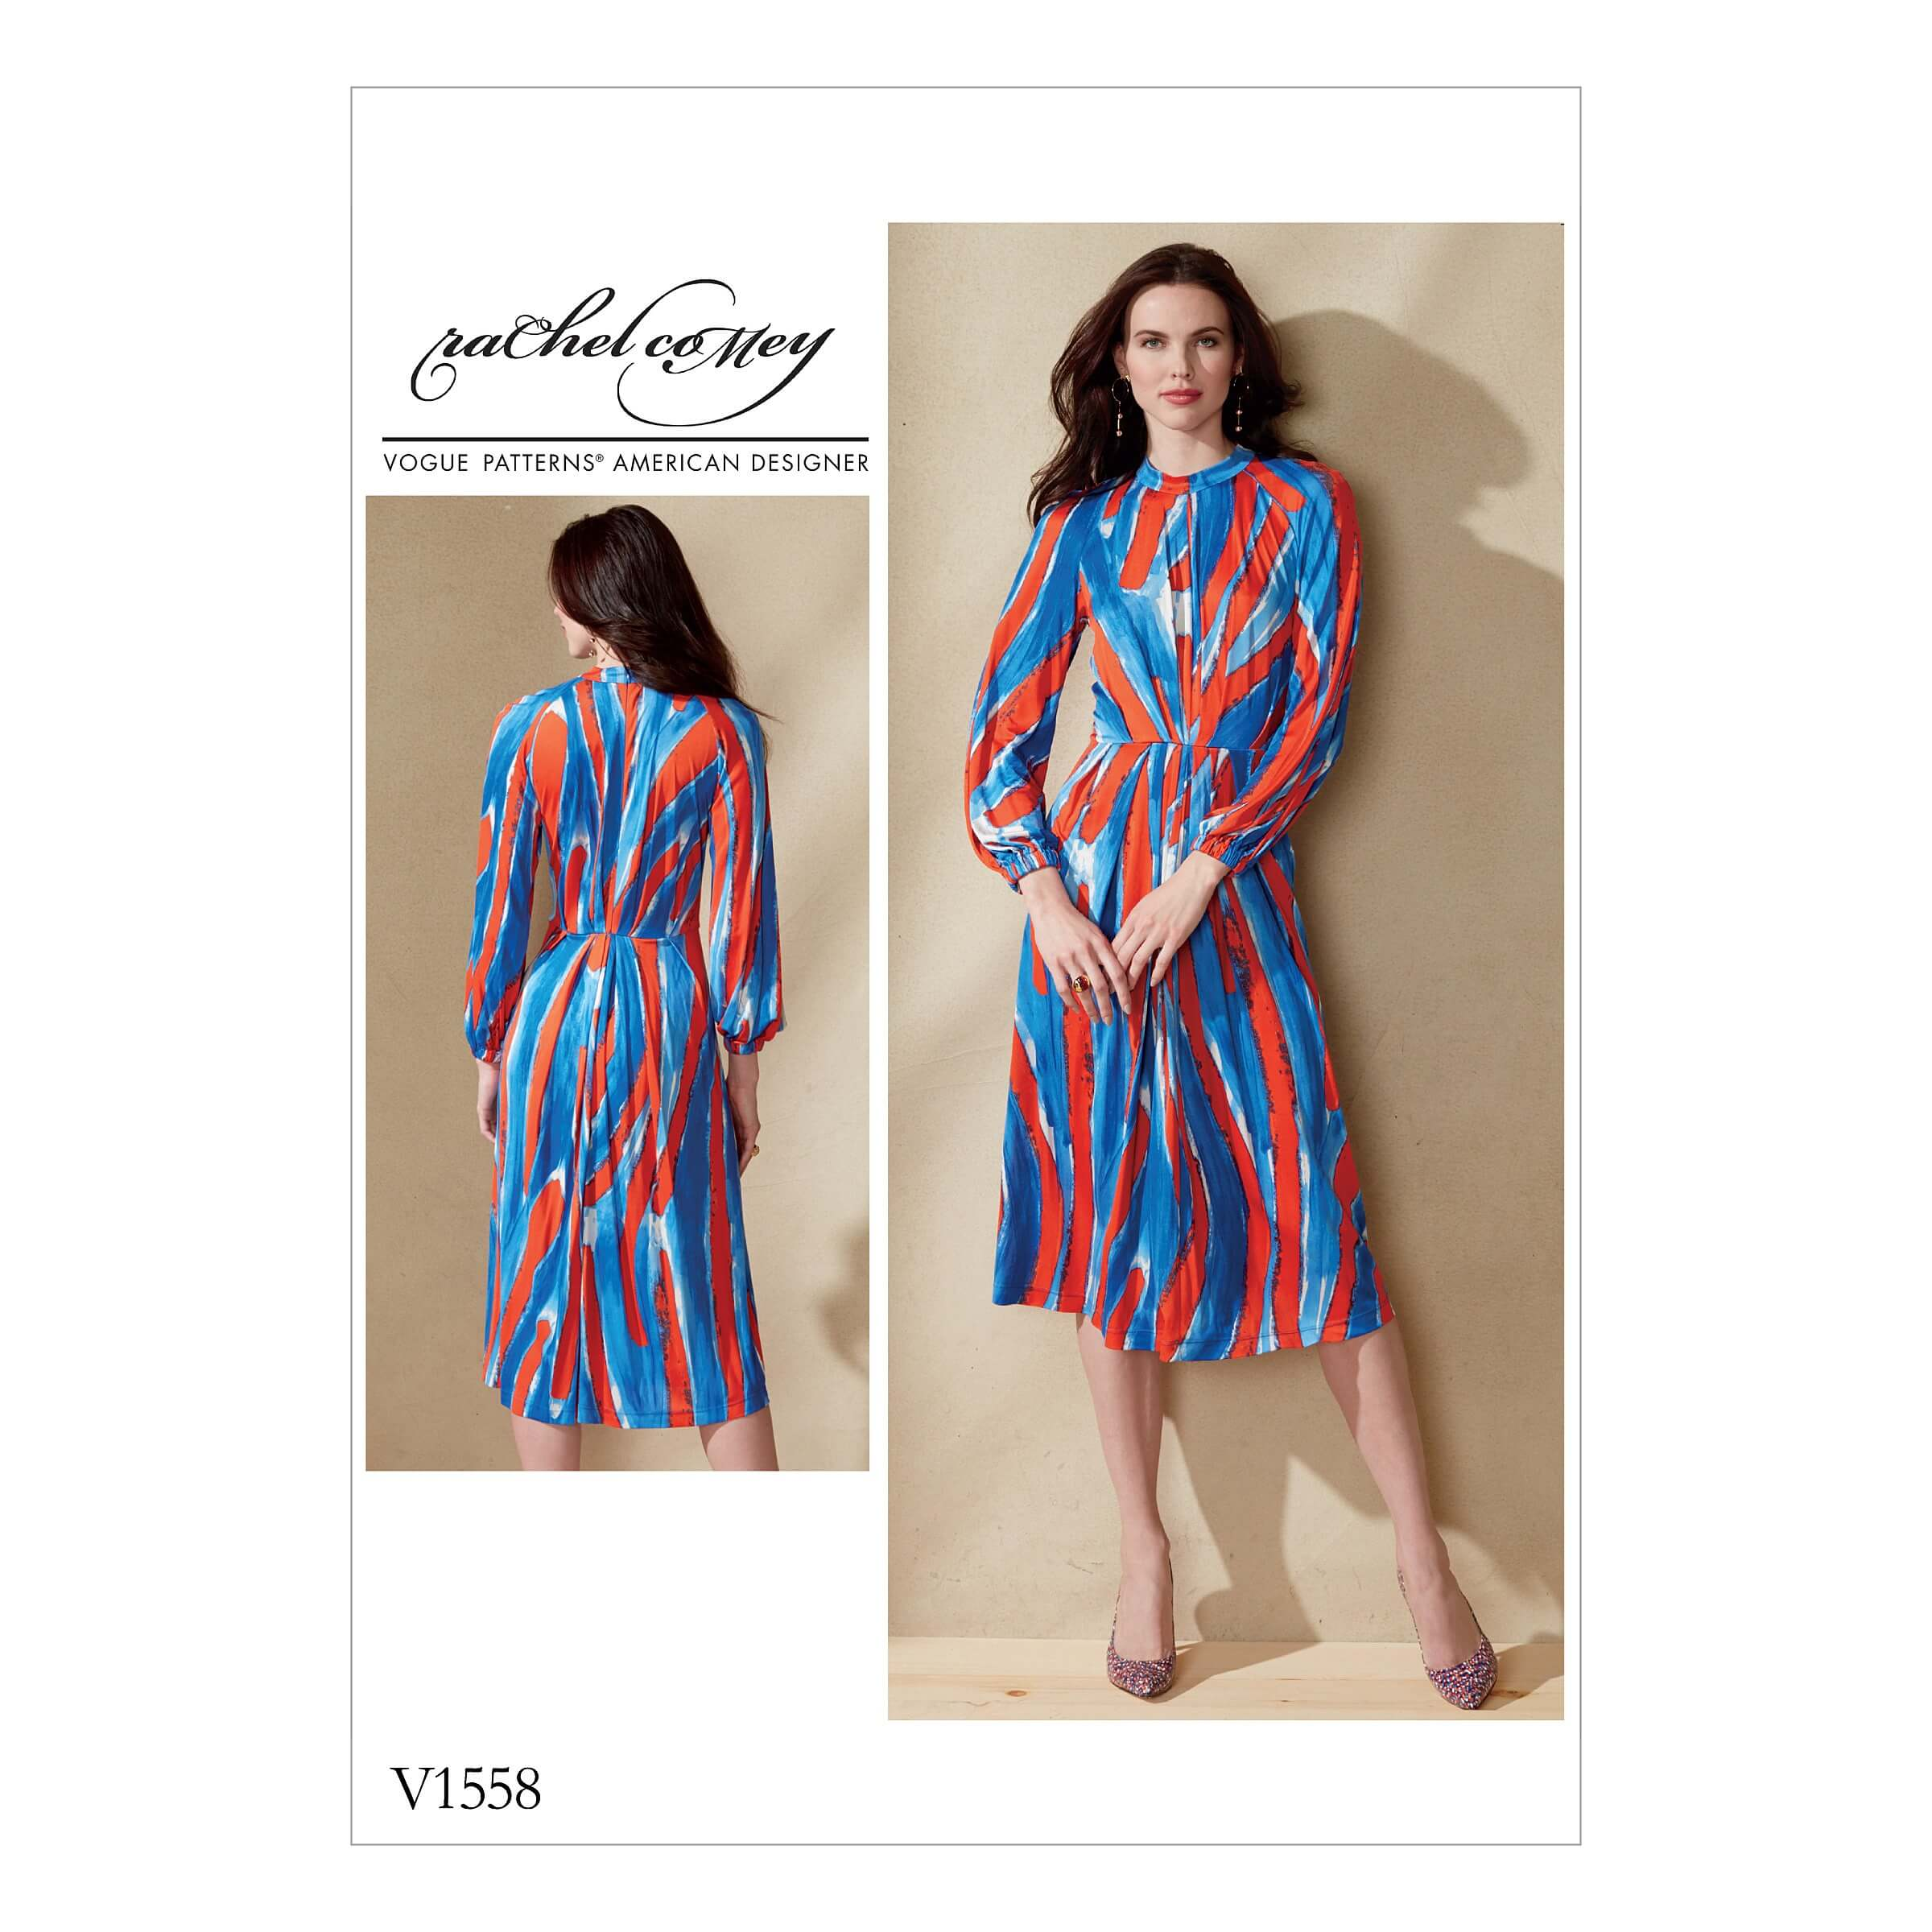 Vogue Sewing Pattern V1558 Women's Dress with Raglan Sleeve and Pleat Waist